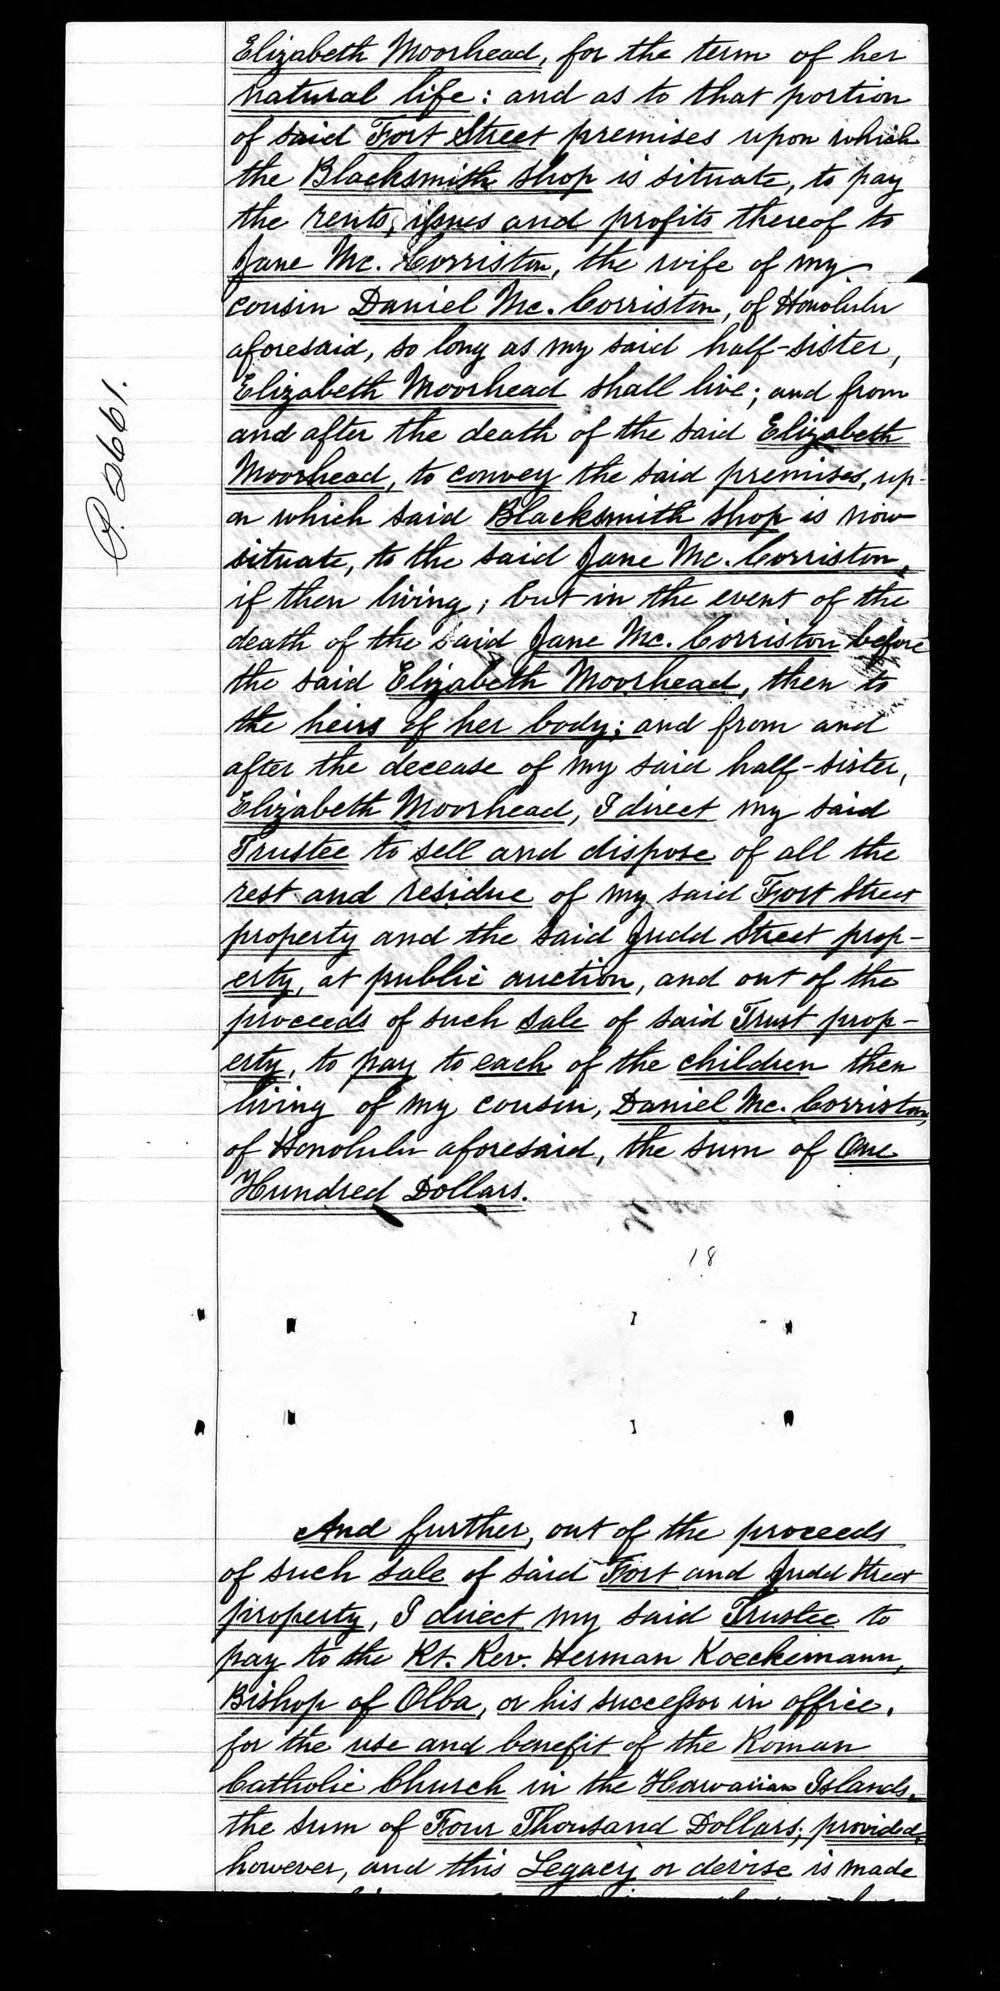 The Last Will and Testament of John McColgan, Page 4, 1890